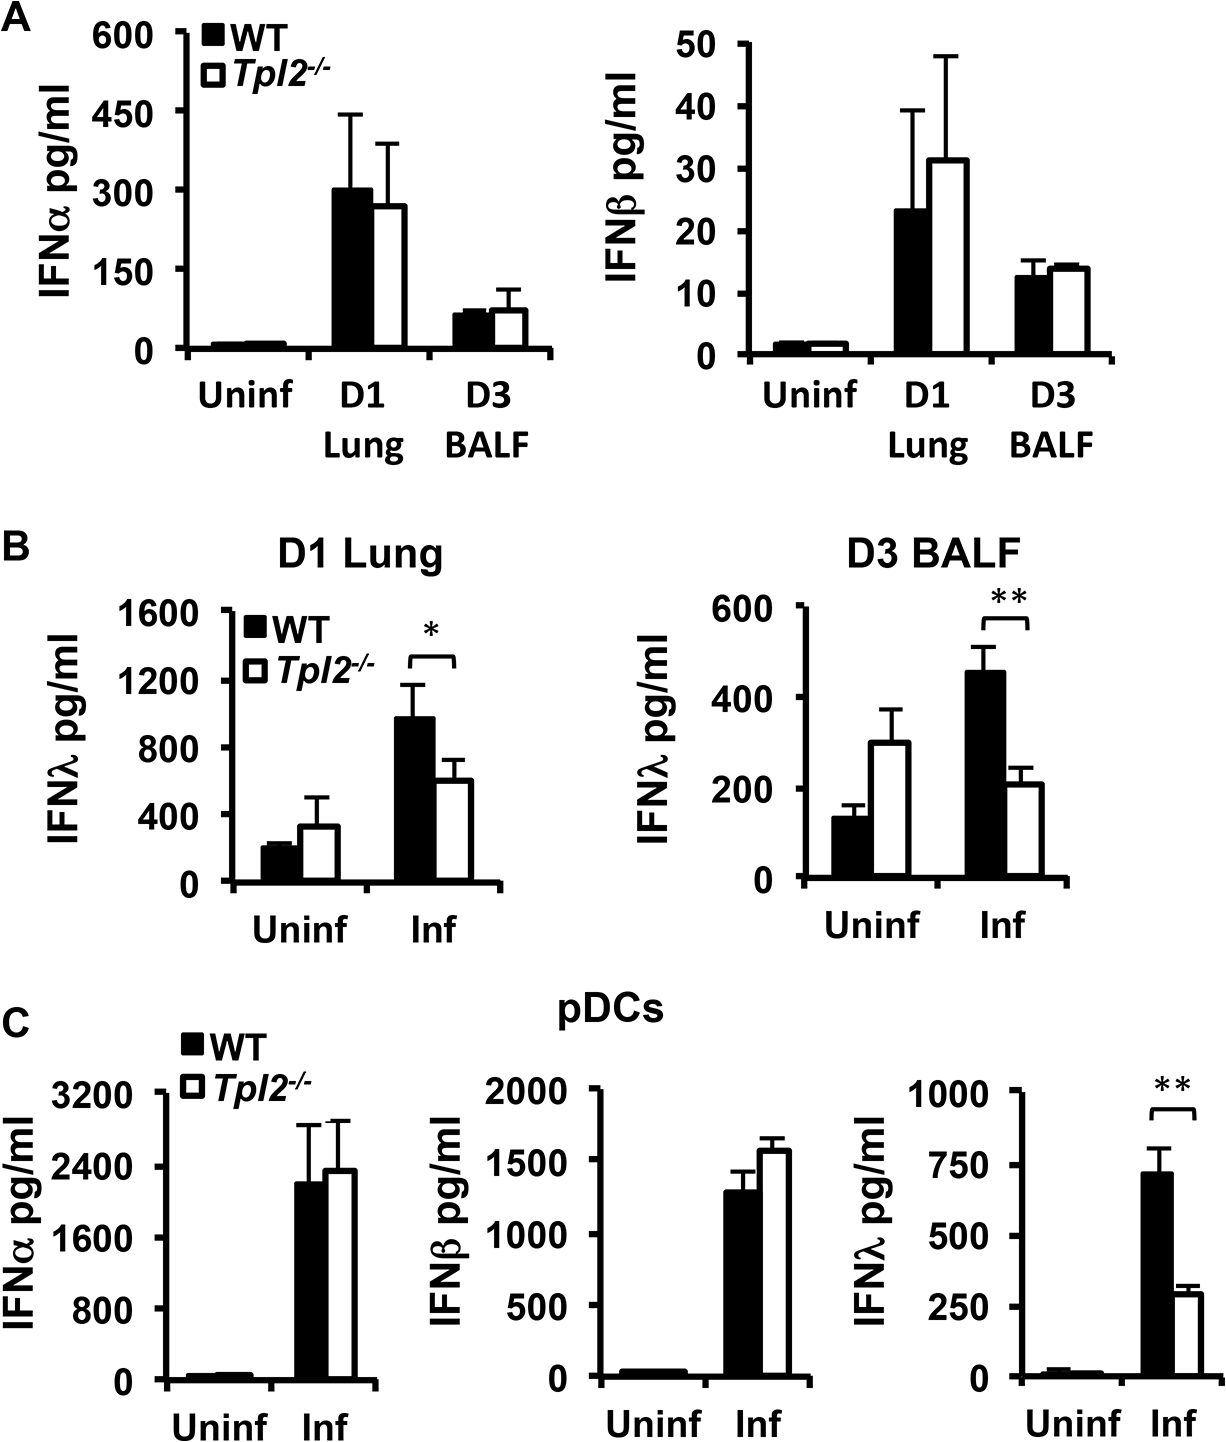 Tpl2 is required for optimal IFNλ production during influenza virus infection <i>in vitro</i> and <i>in vivo</i>.